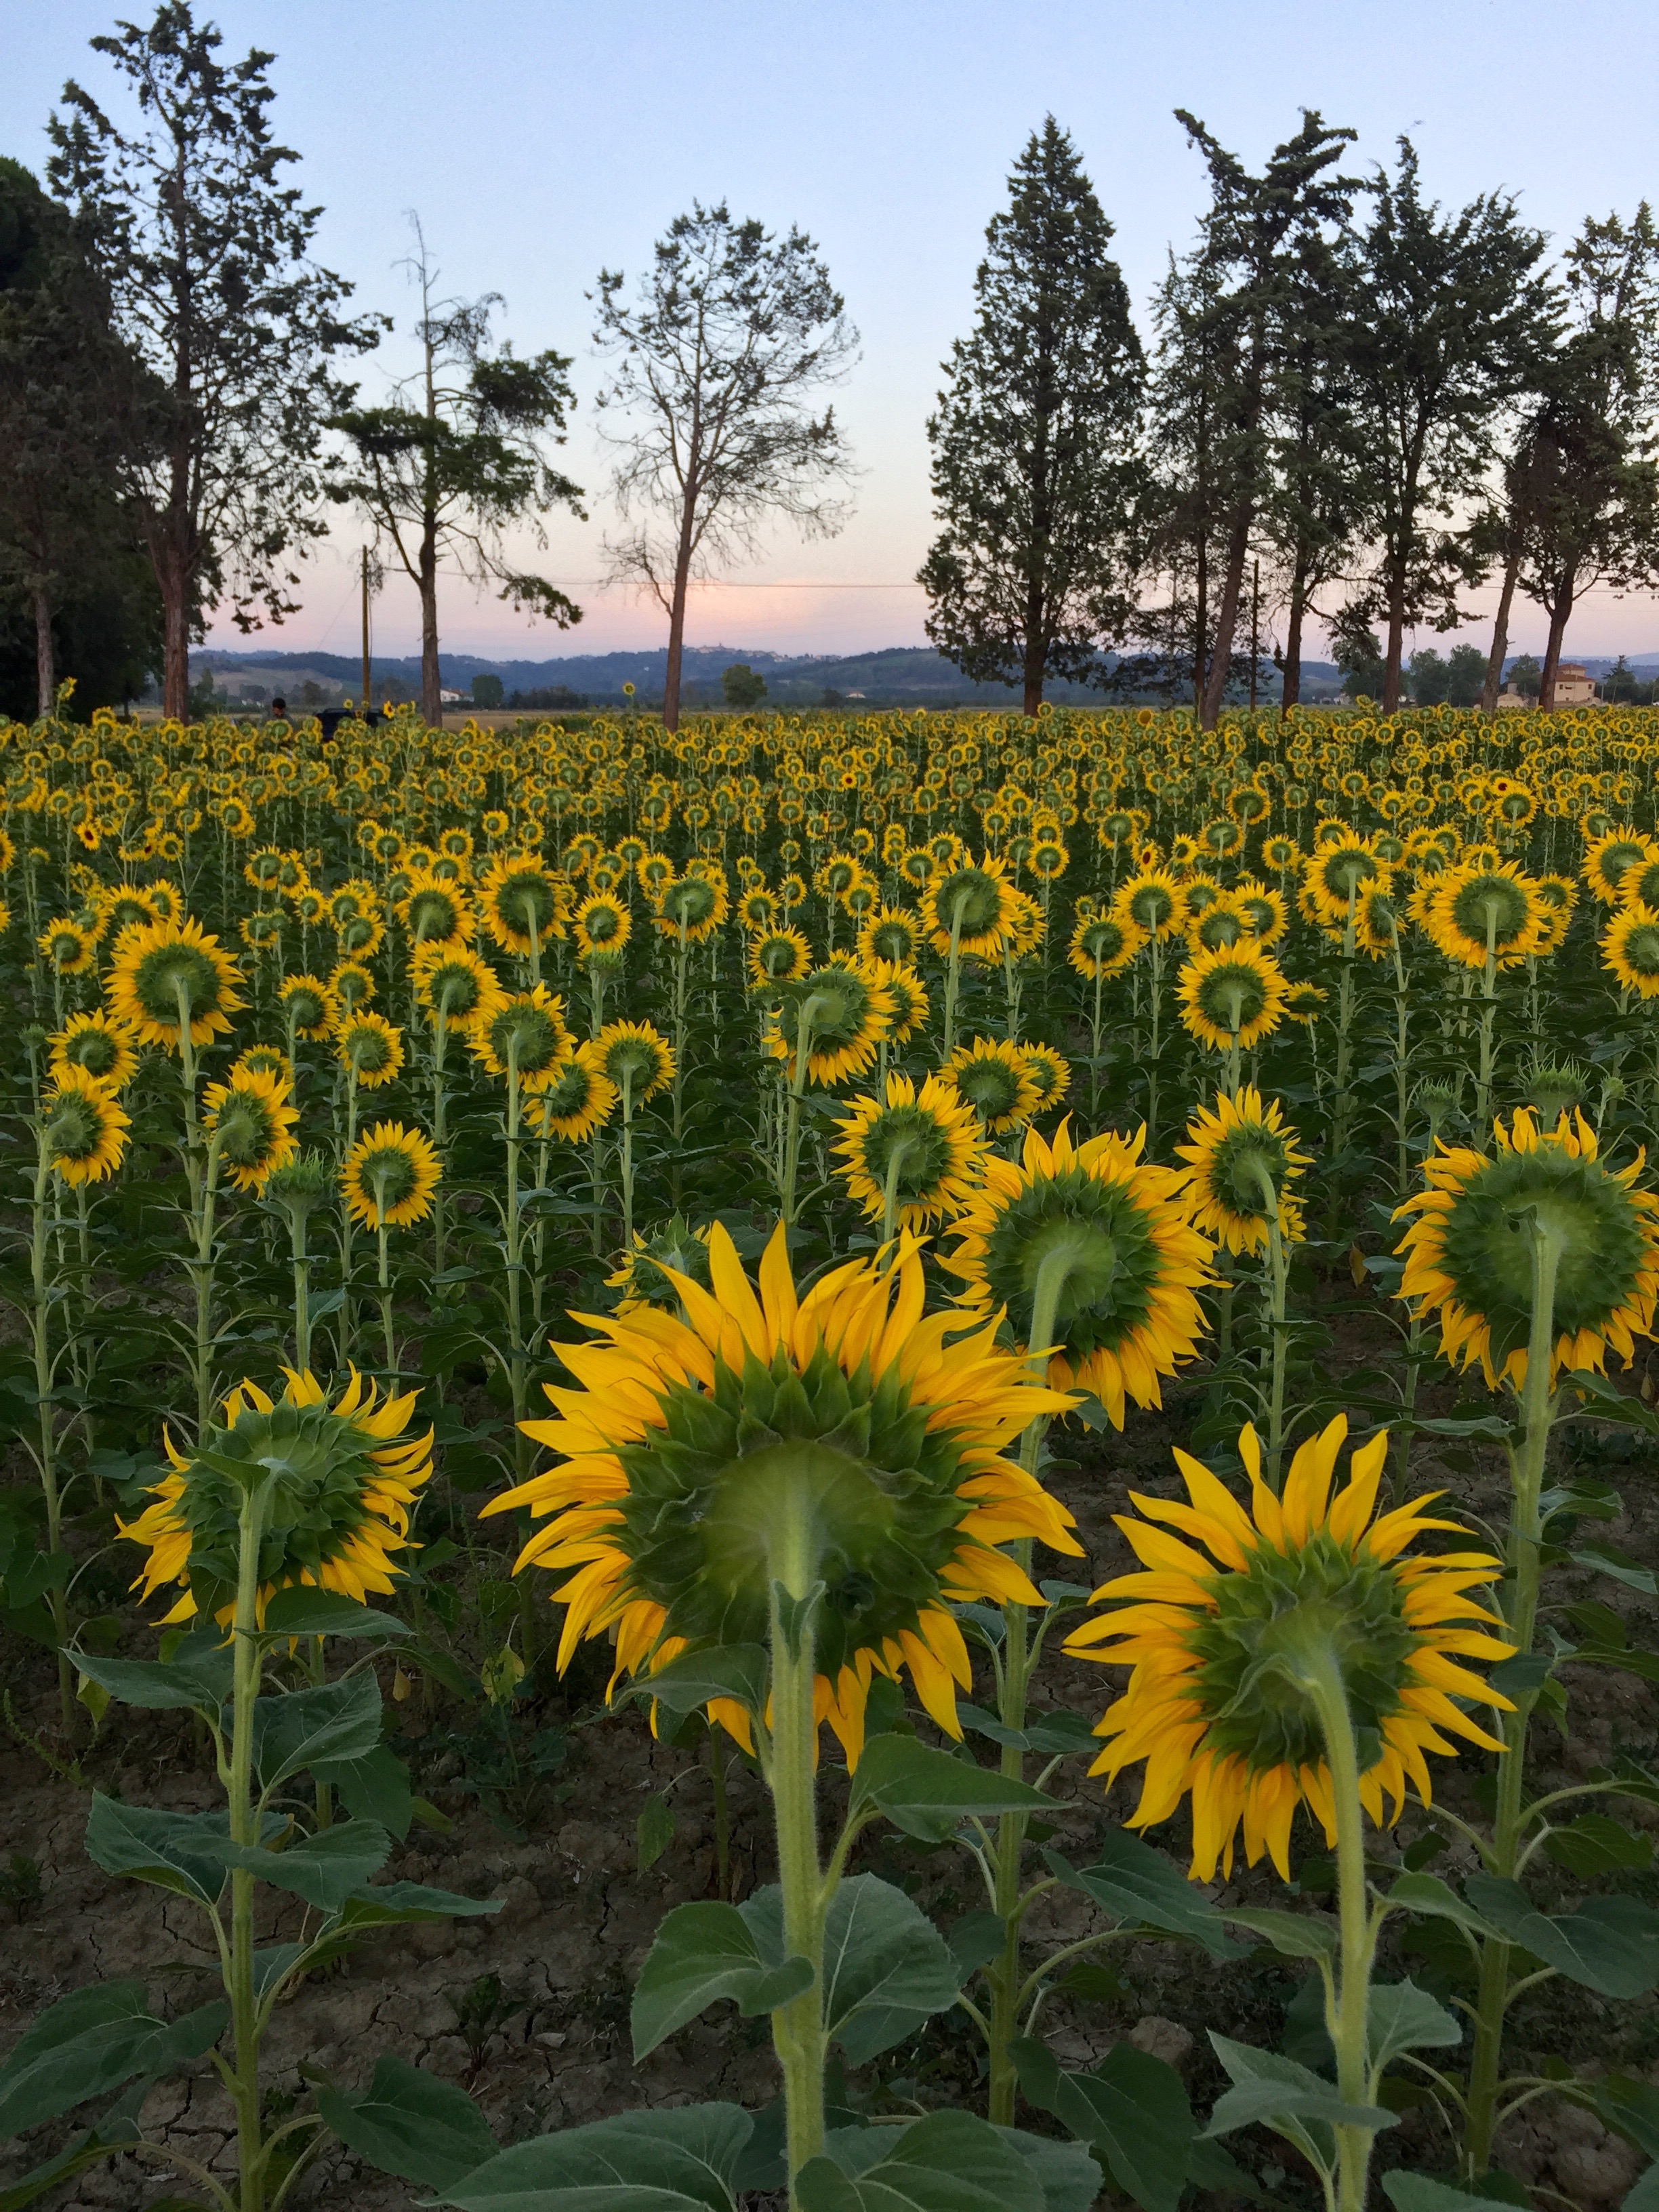 Sunflowers near Capannoli by Siri Thorson